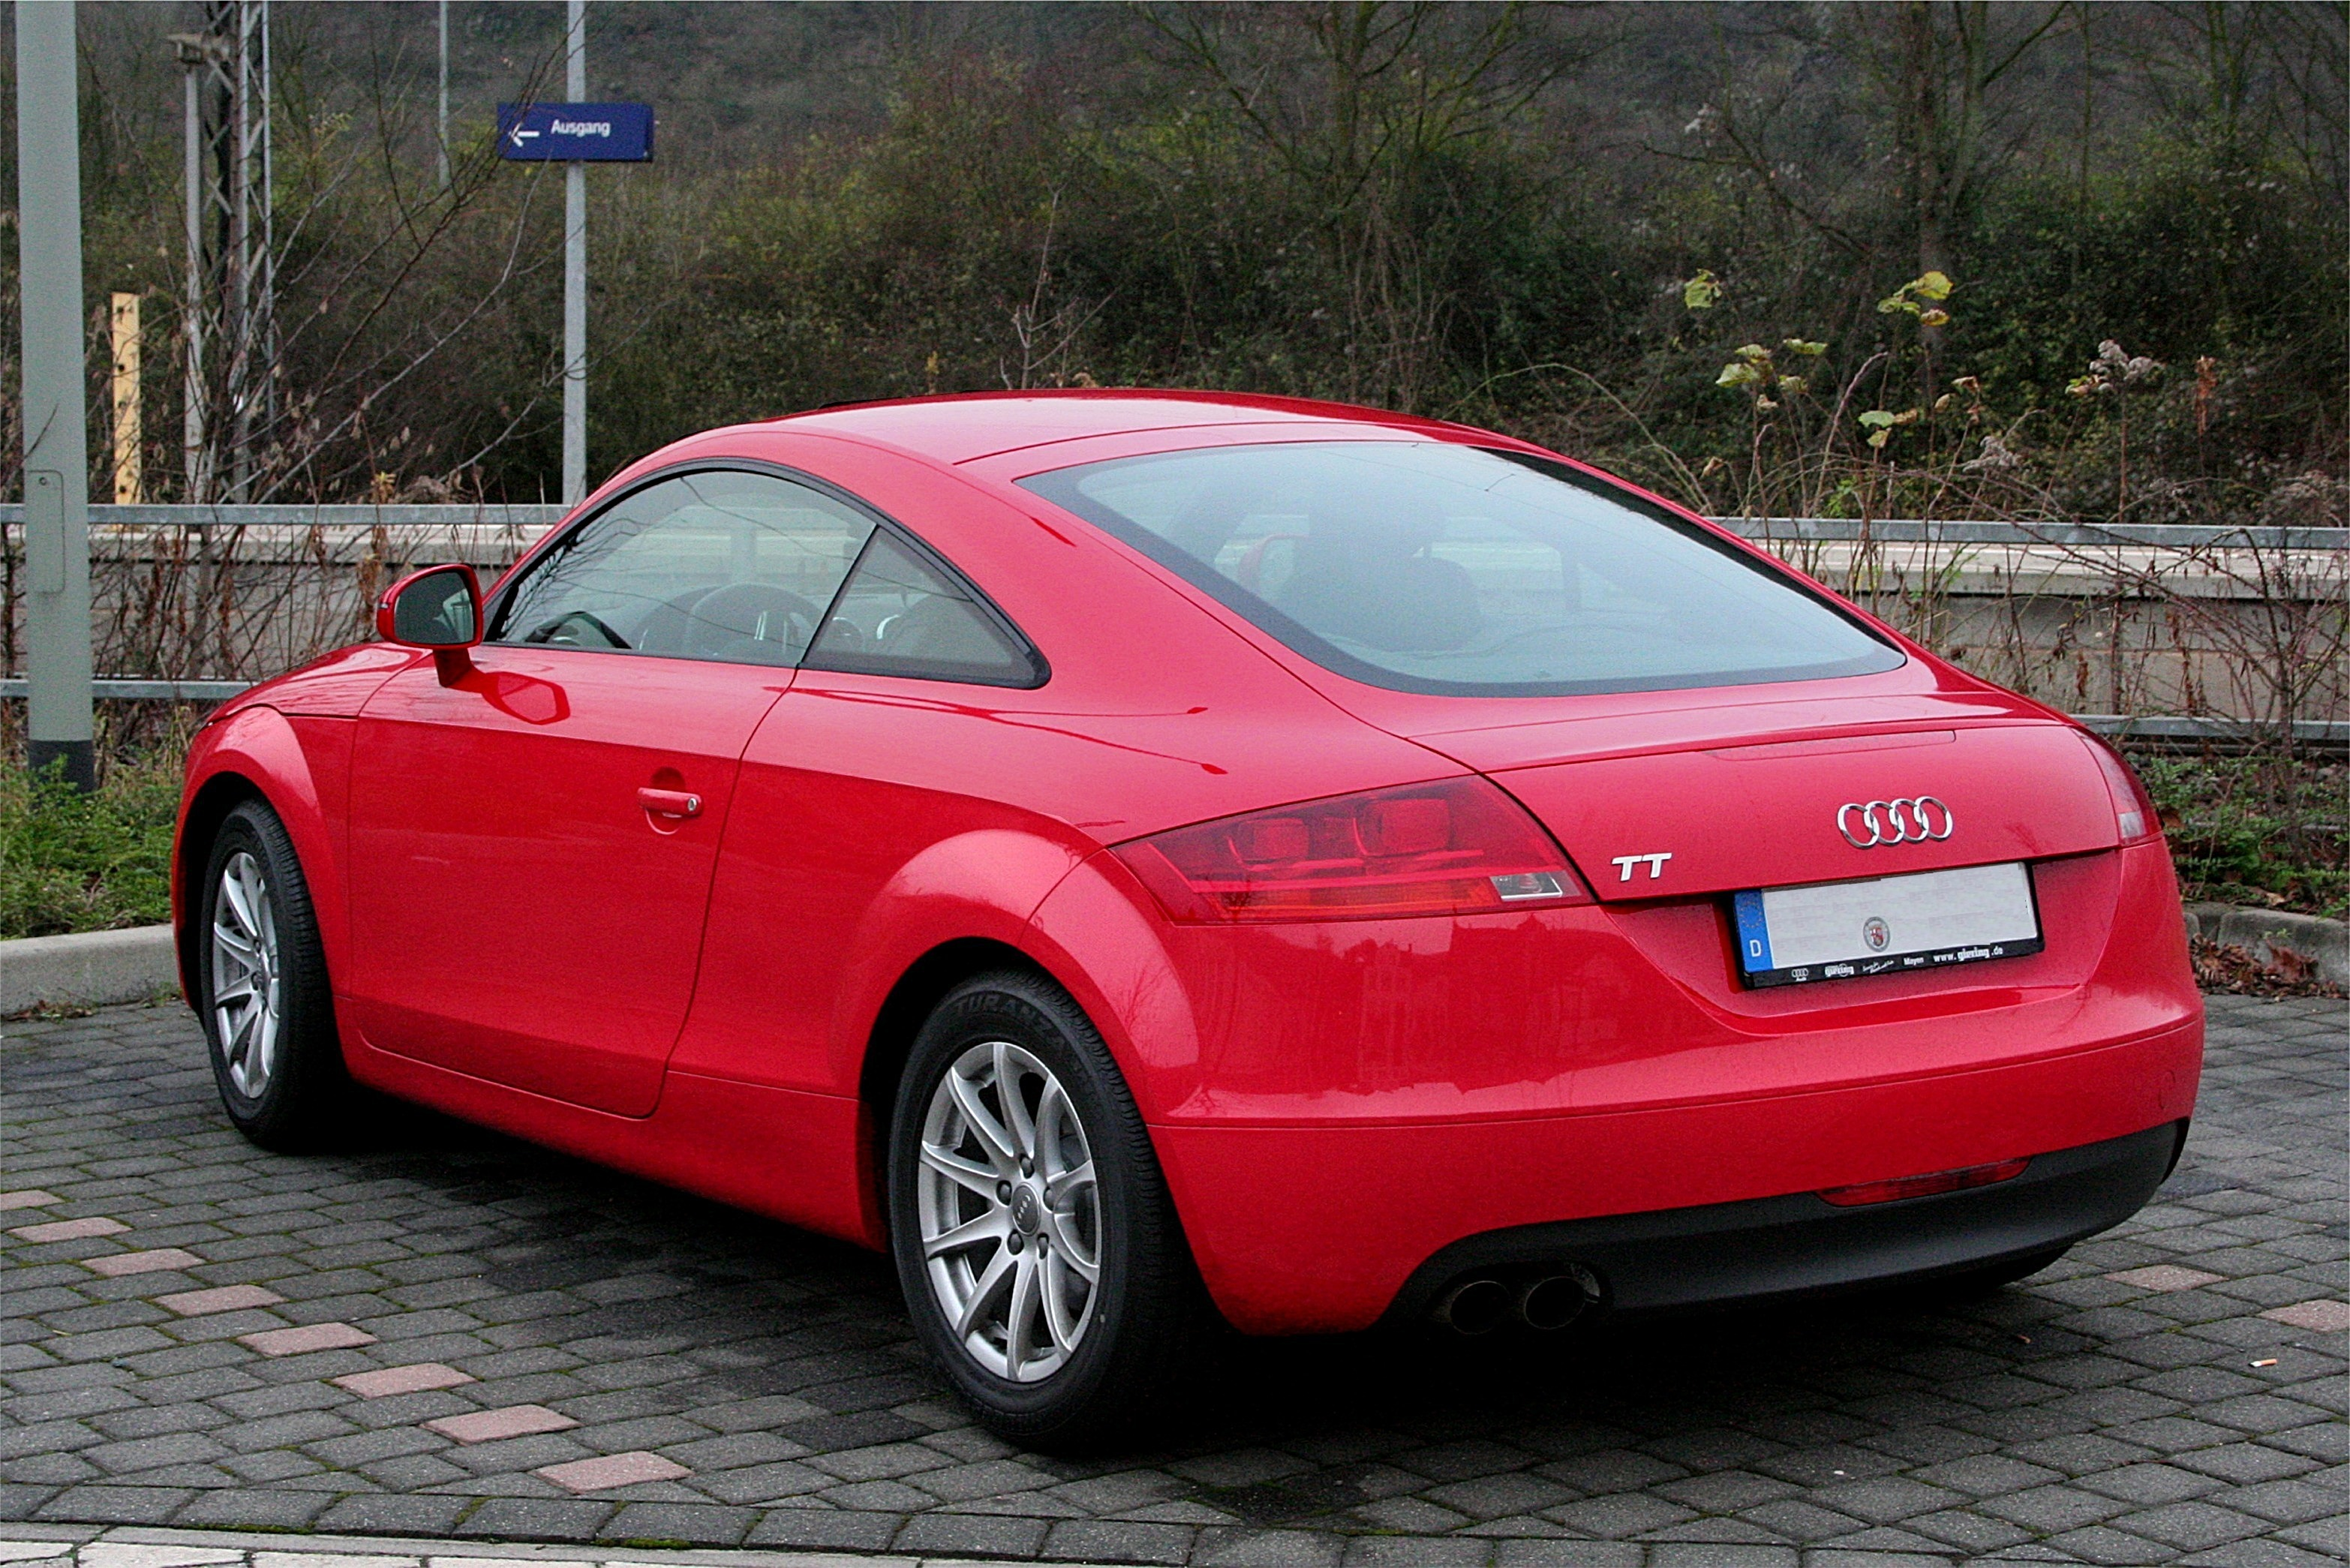 2008 audi tt audizine 39 s 2008 mk2 audi tt azprojectt panjo file audi tt bj 25 05 retusch jpg. Black Bedroom Furniture Sets. Home Design Ideas